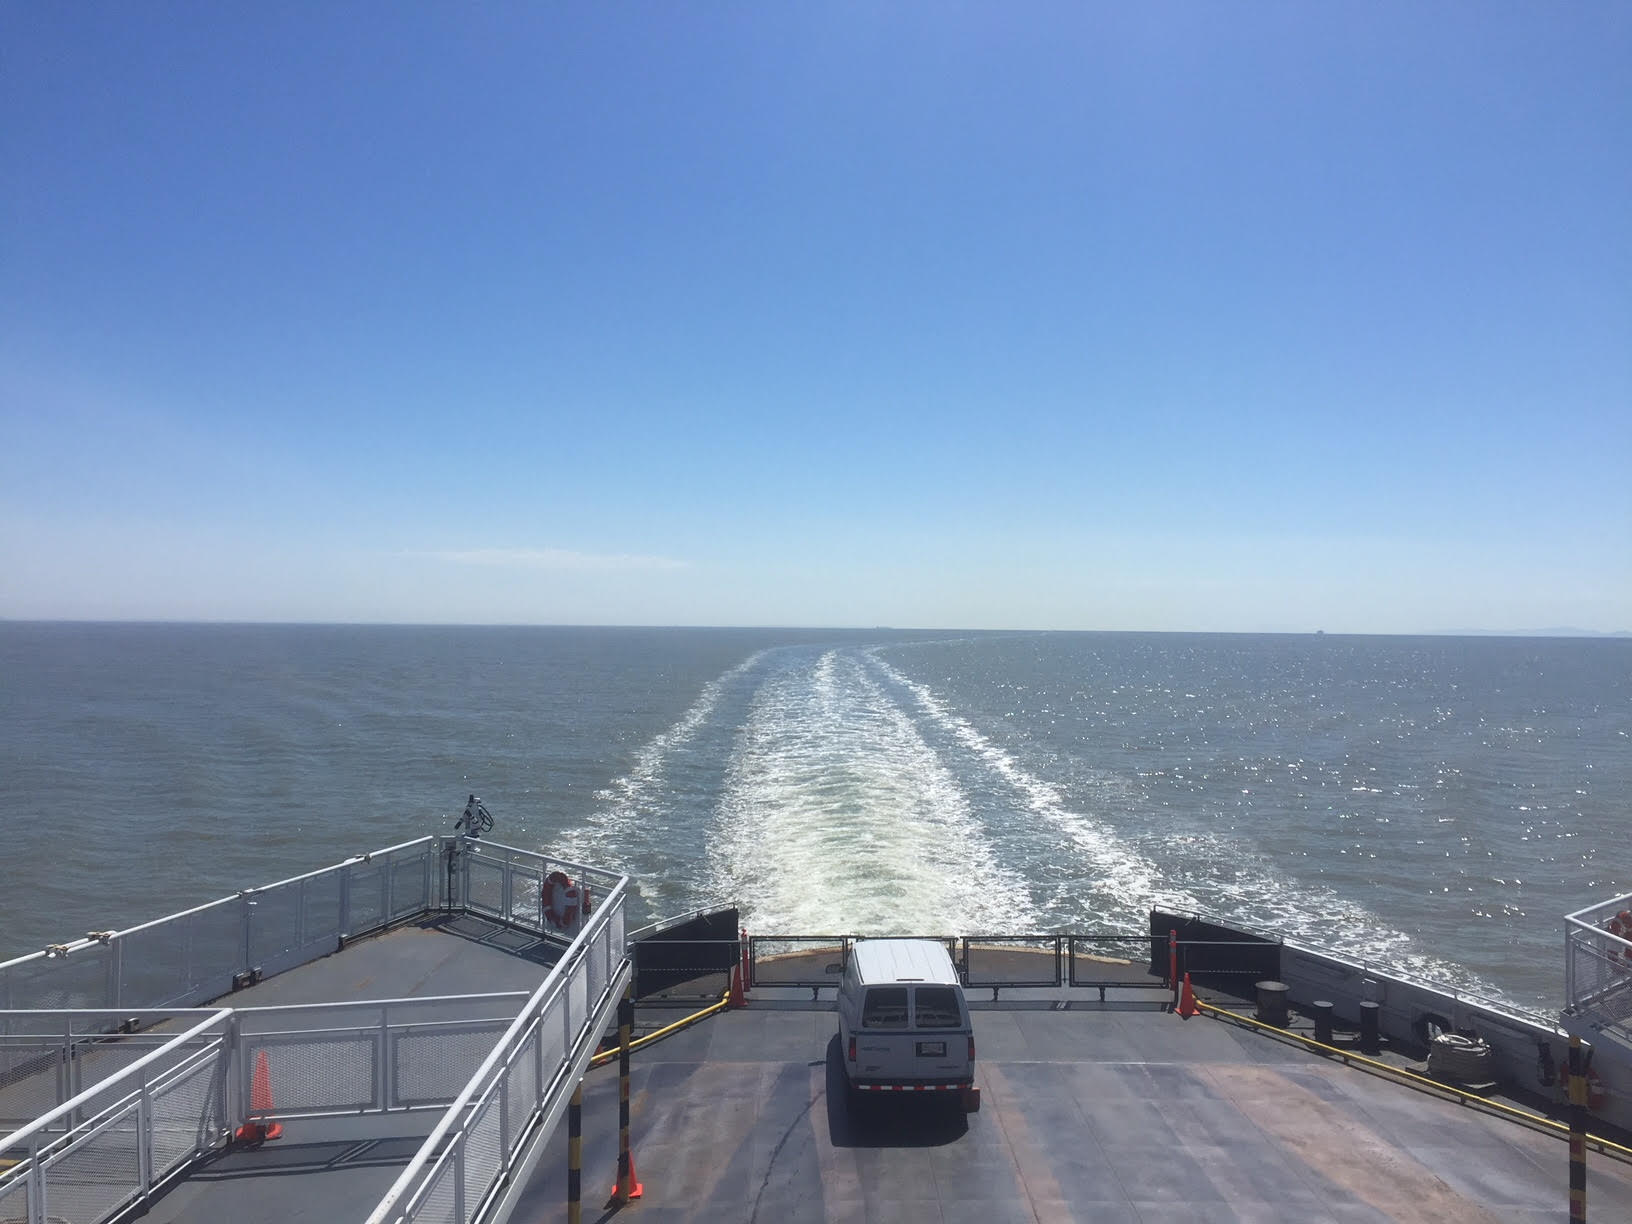 A beautiful day for a ferry ride!